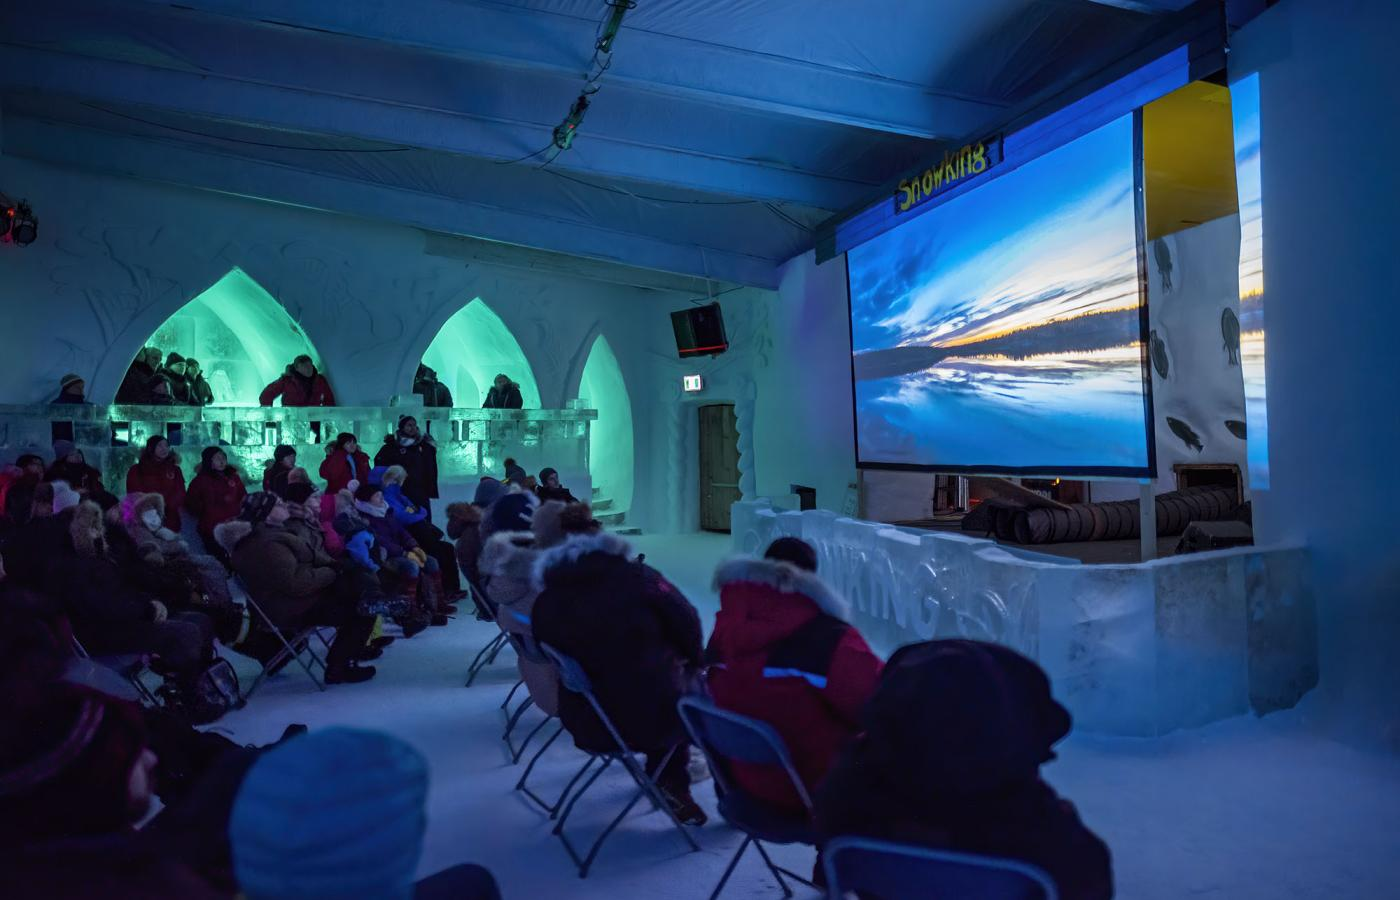 NAKA festival goers watch a documentary in the snowcastle